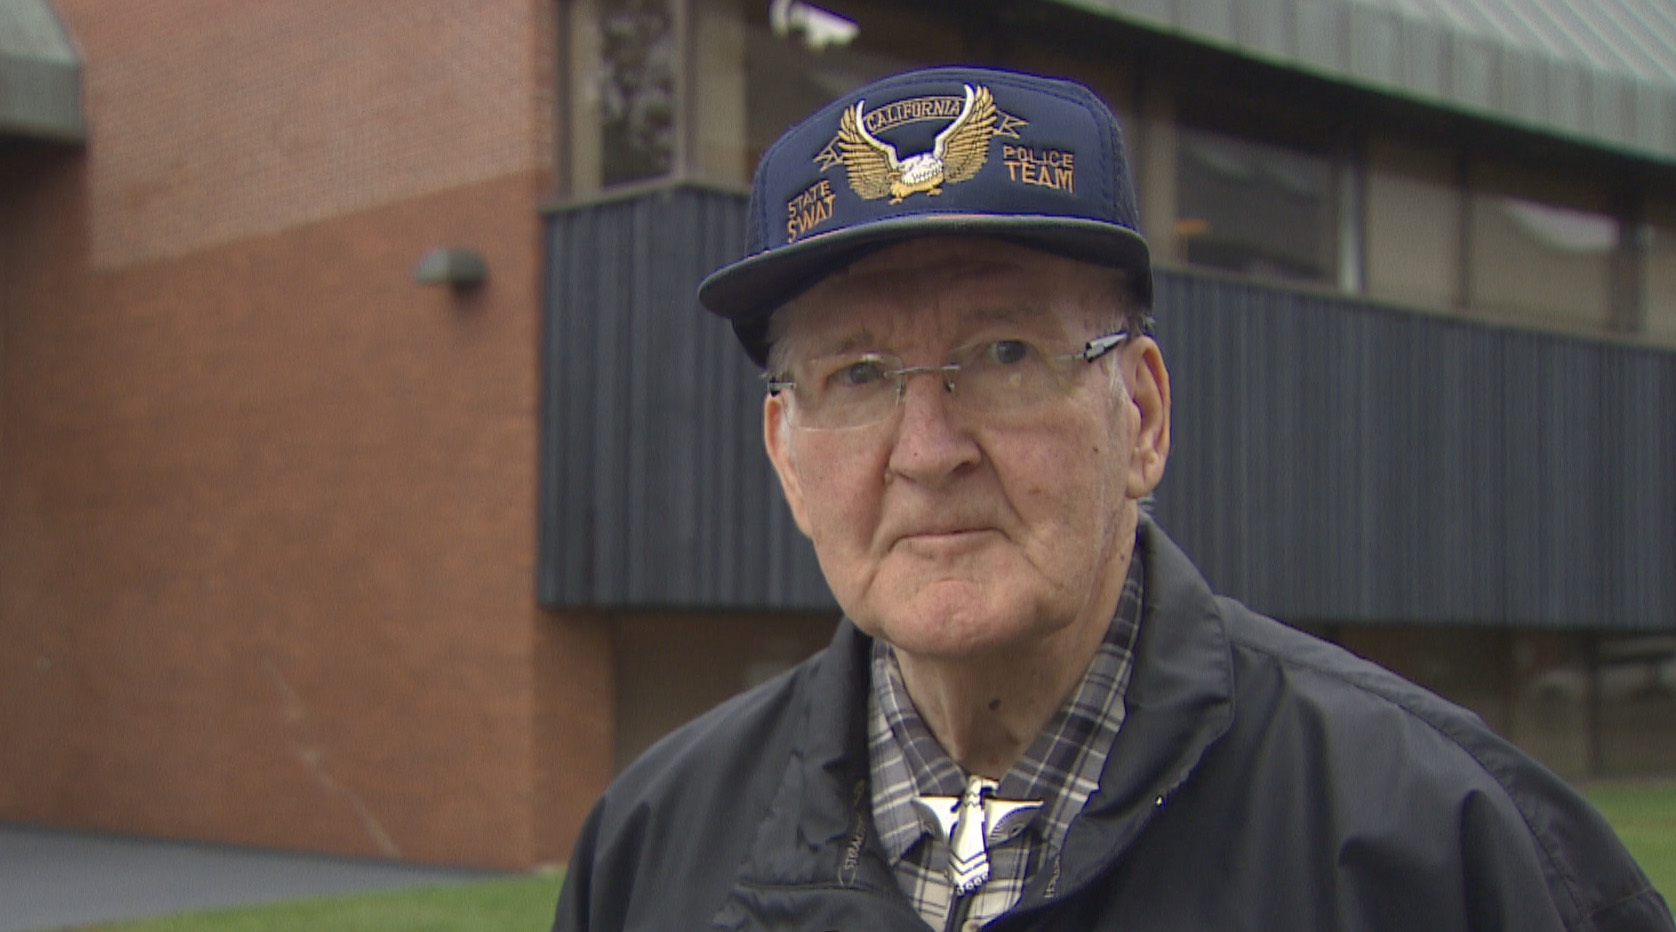 Bill Acorn was the deputy sheriff at the courthouse in October 1988 when the bombing happened. (Shane Hennessey/CBC)